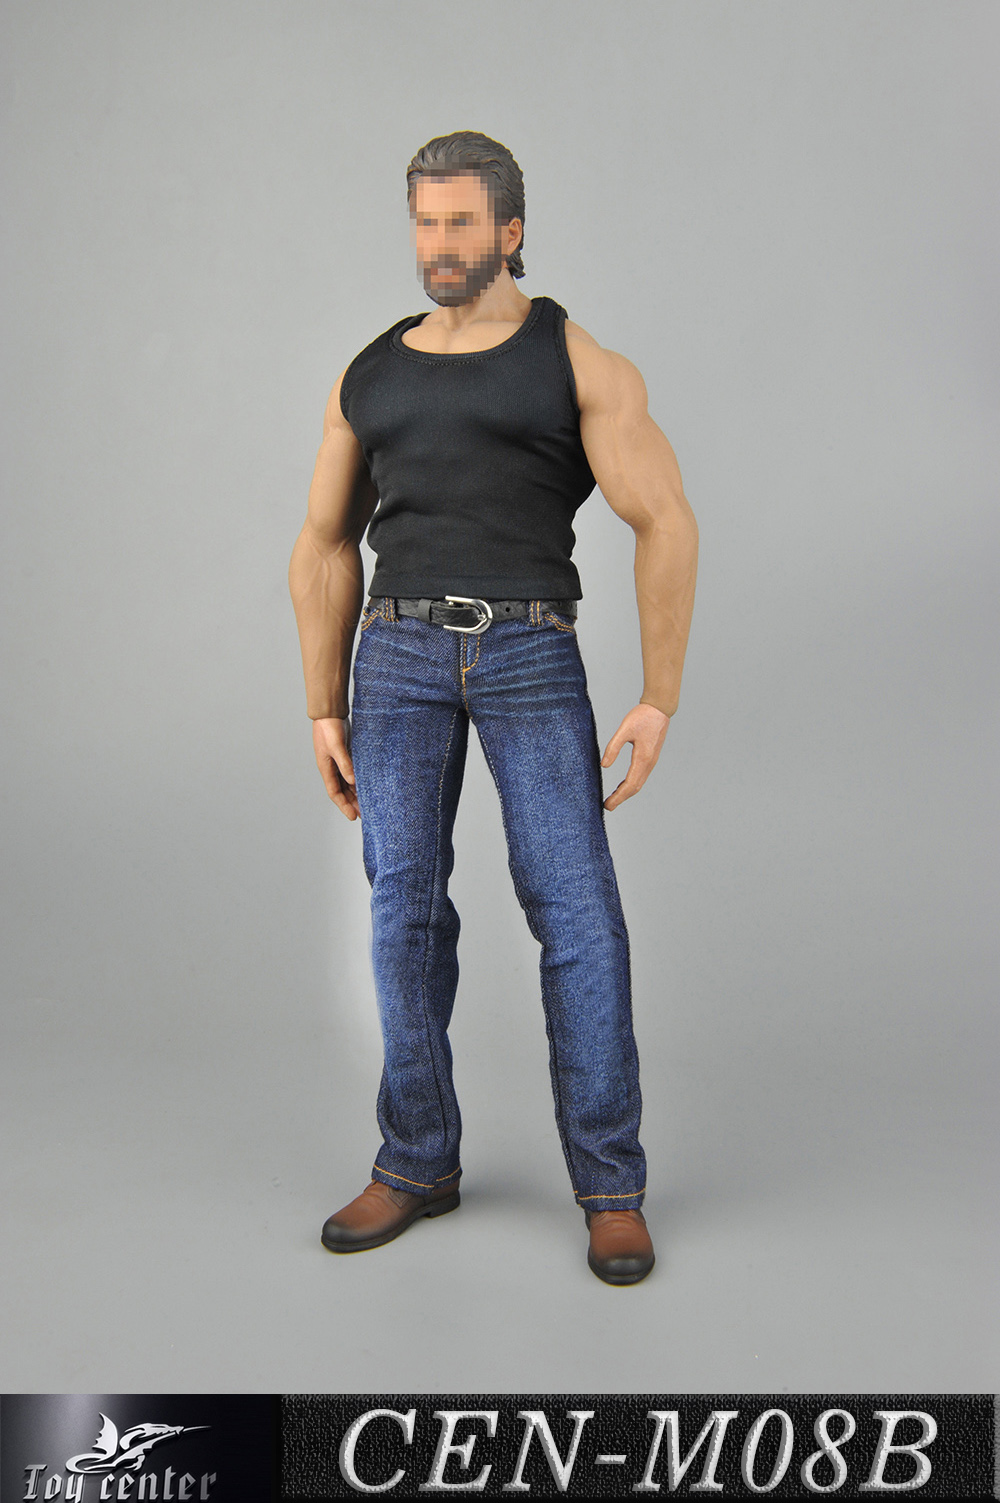 clothes - NEW PRODUCT: Toy Center: 1/6 Sports Vest Jeans Set - Three Colors A/B/C 2359